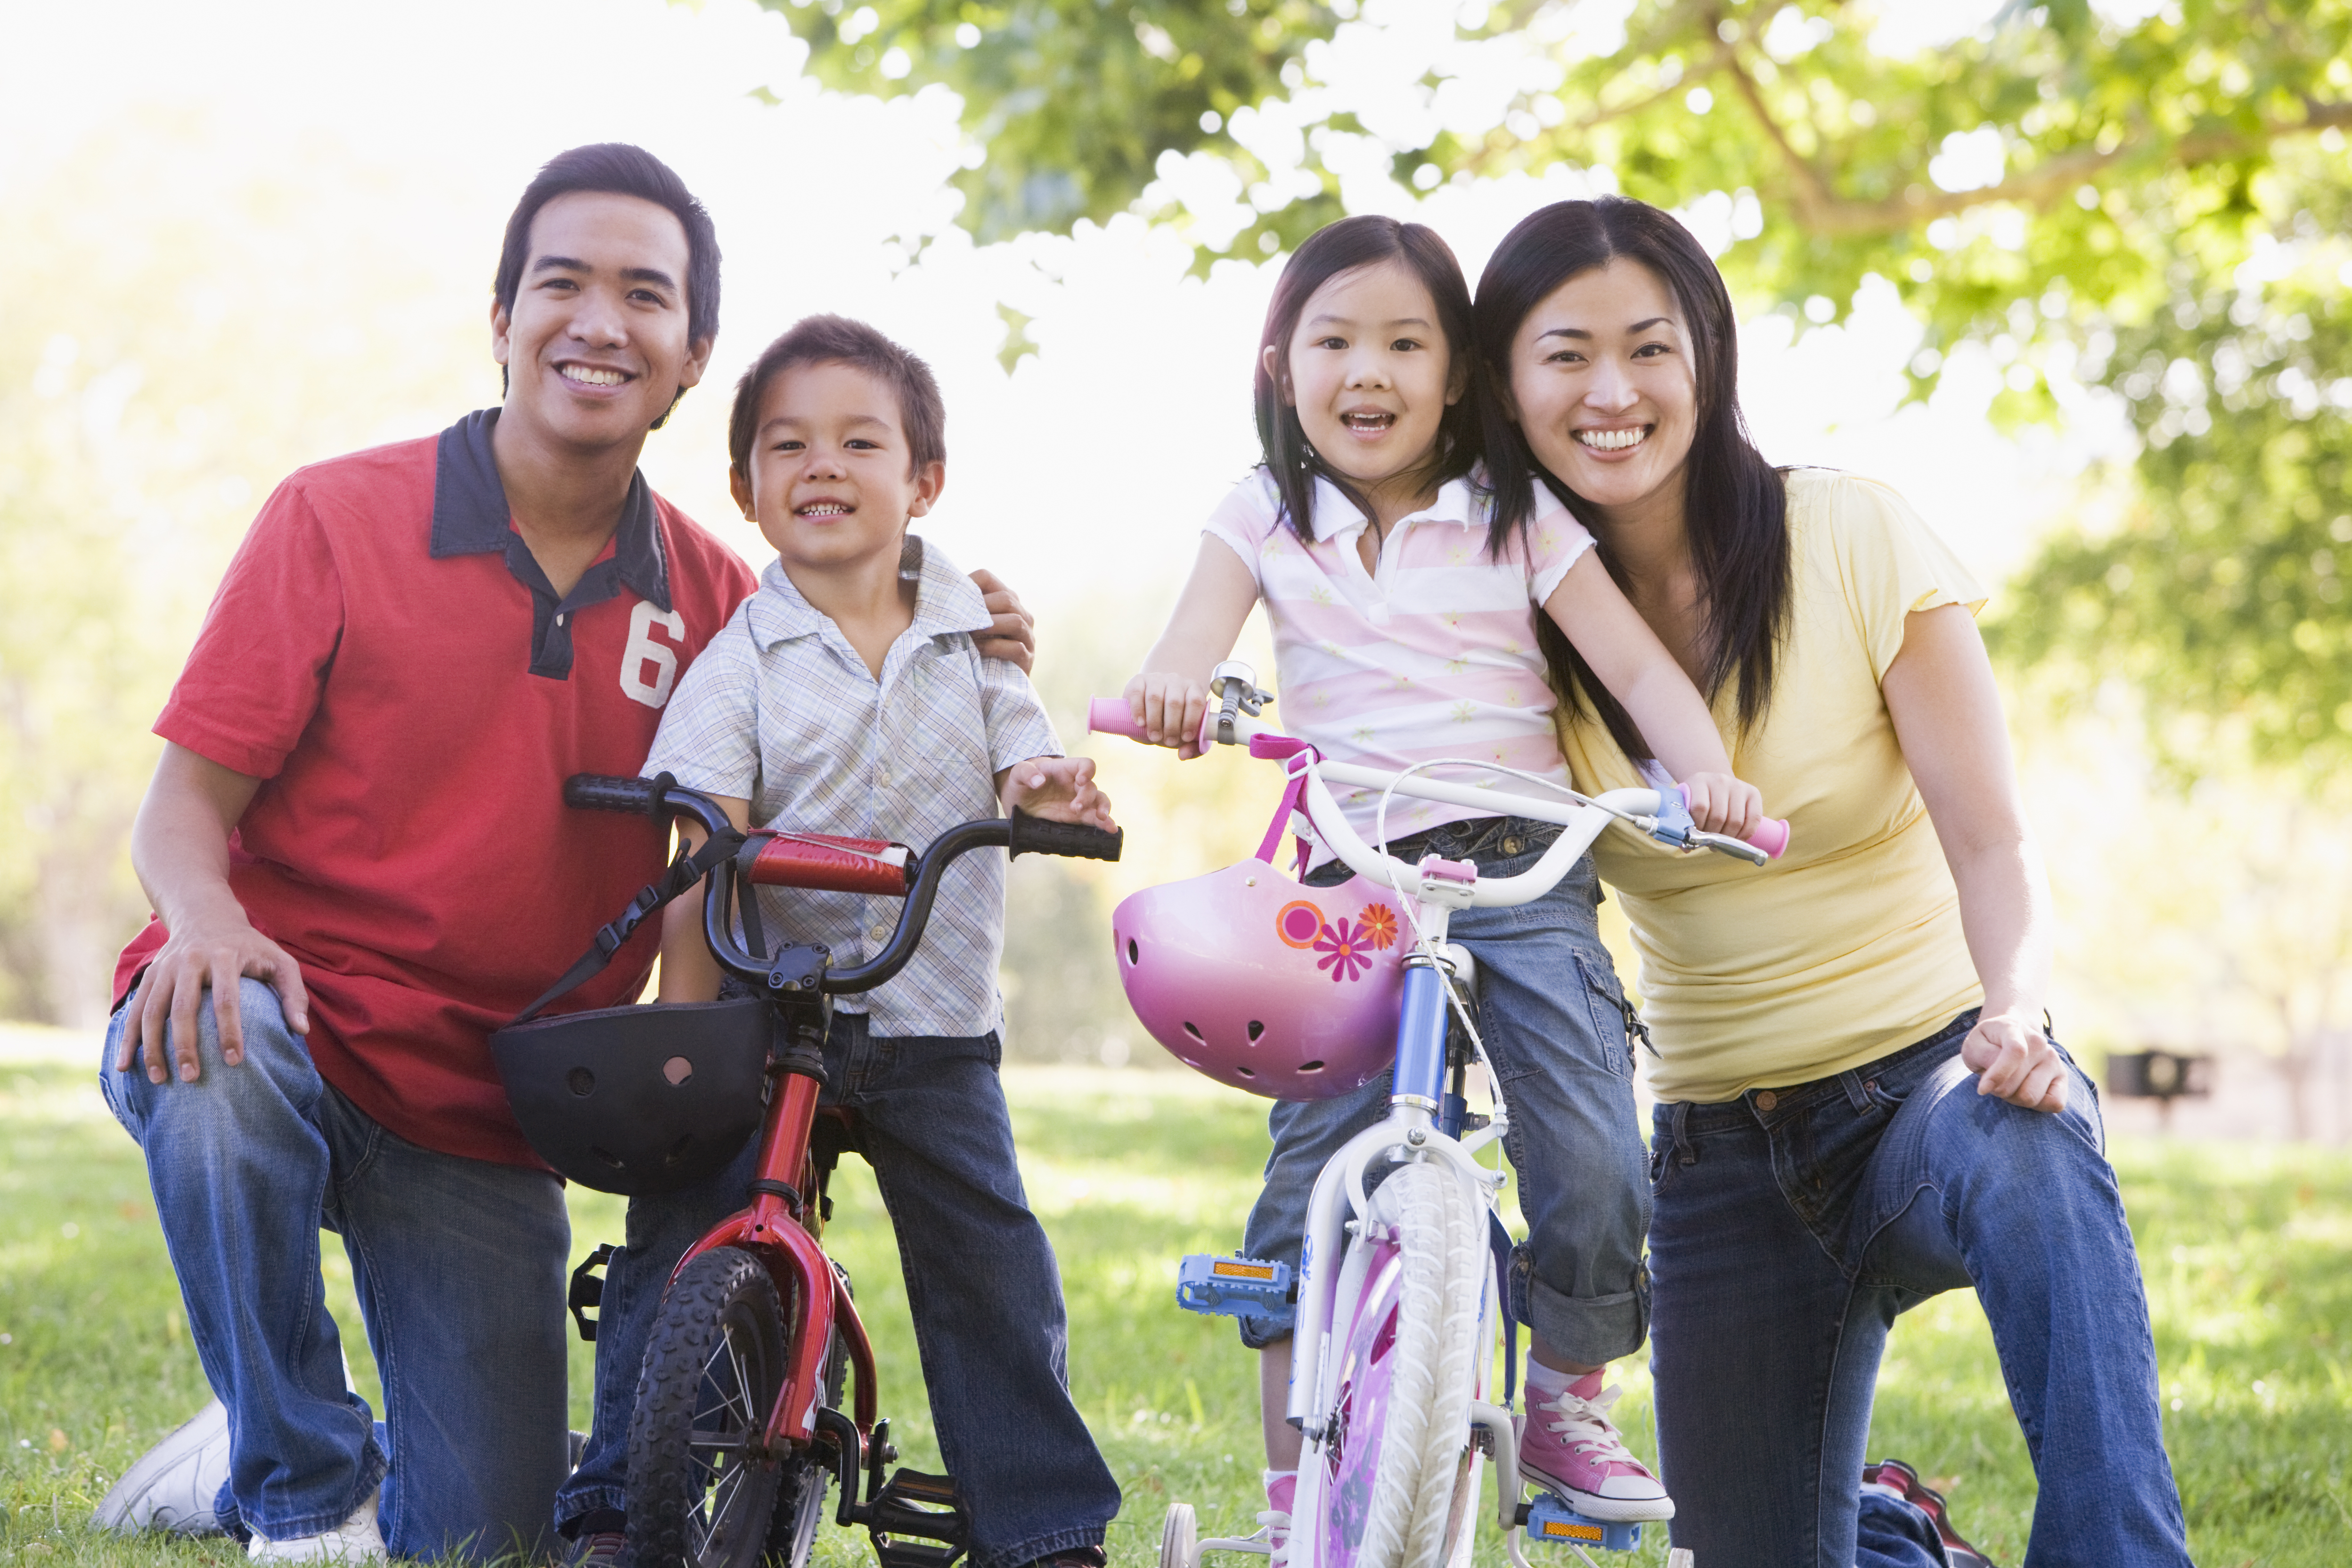 family-with-children-on-bikes-outdoors-smiling_BFGoOtCro